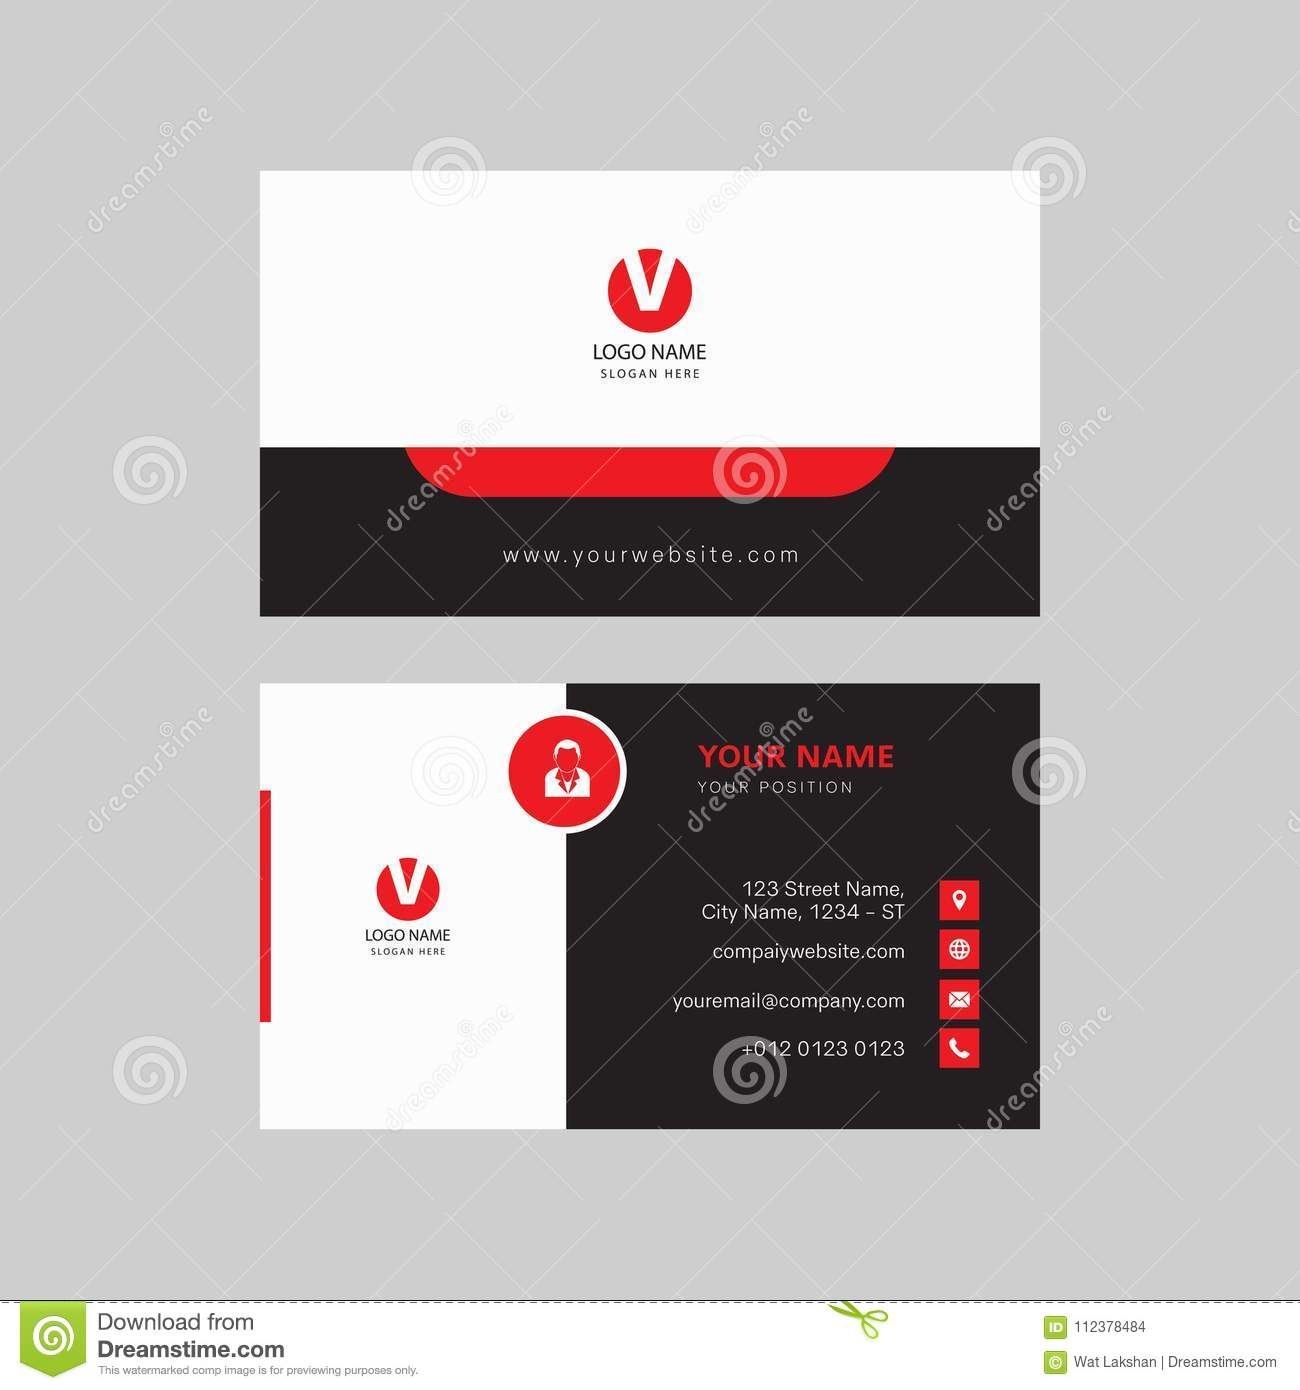 Simple Modern Professional Creative Business Card Design